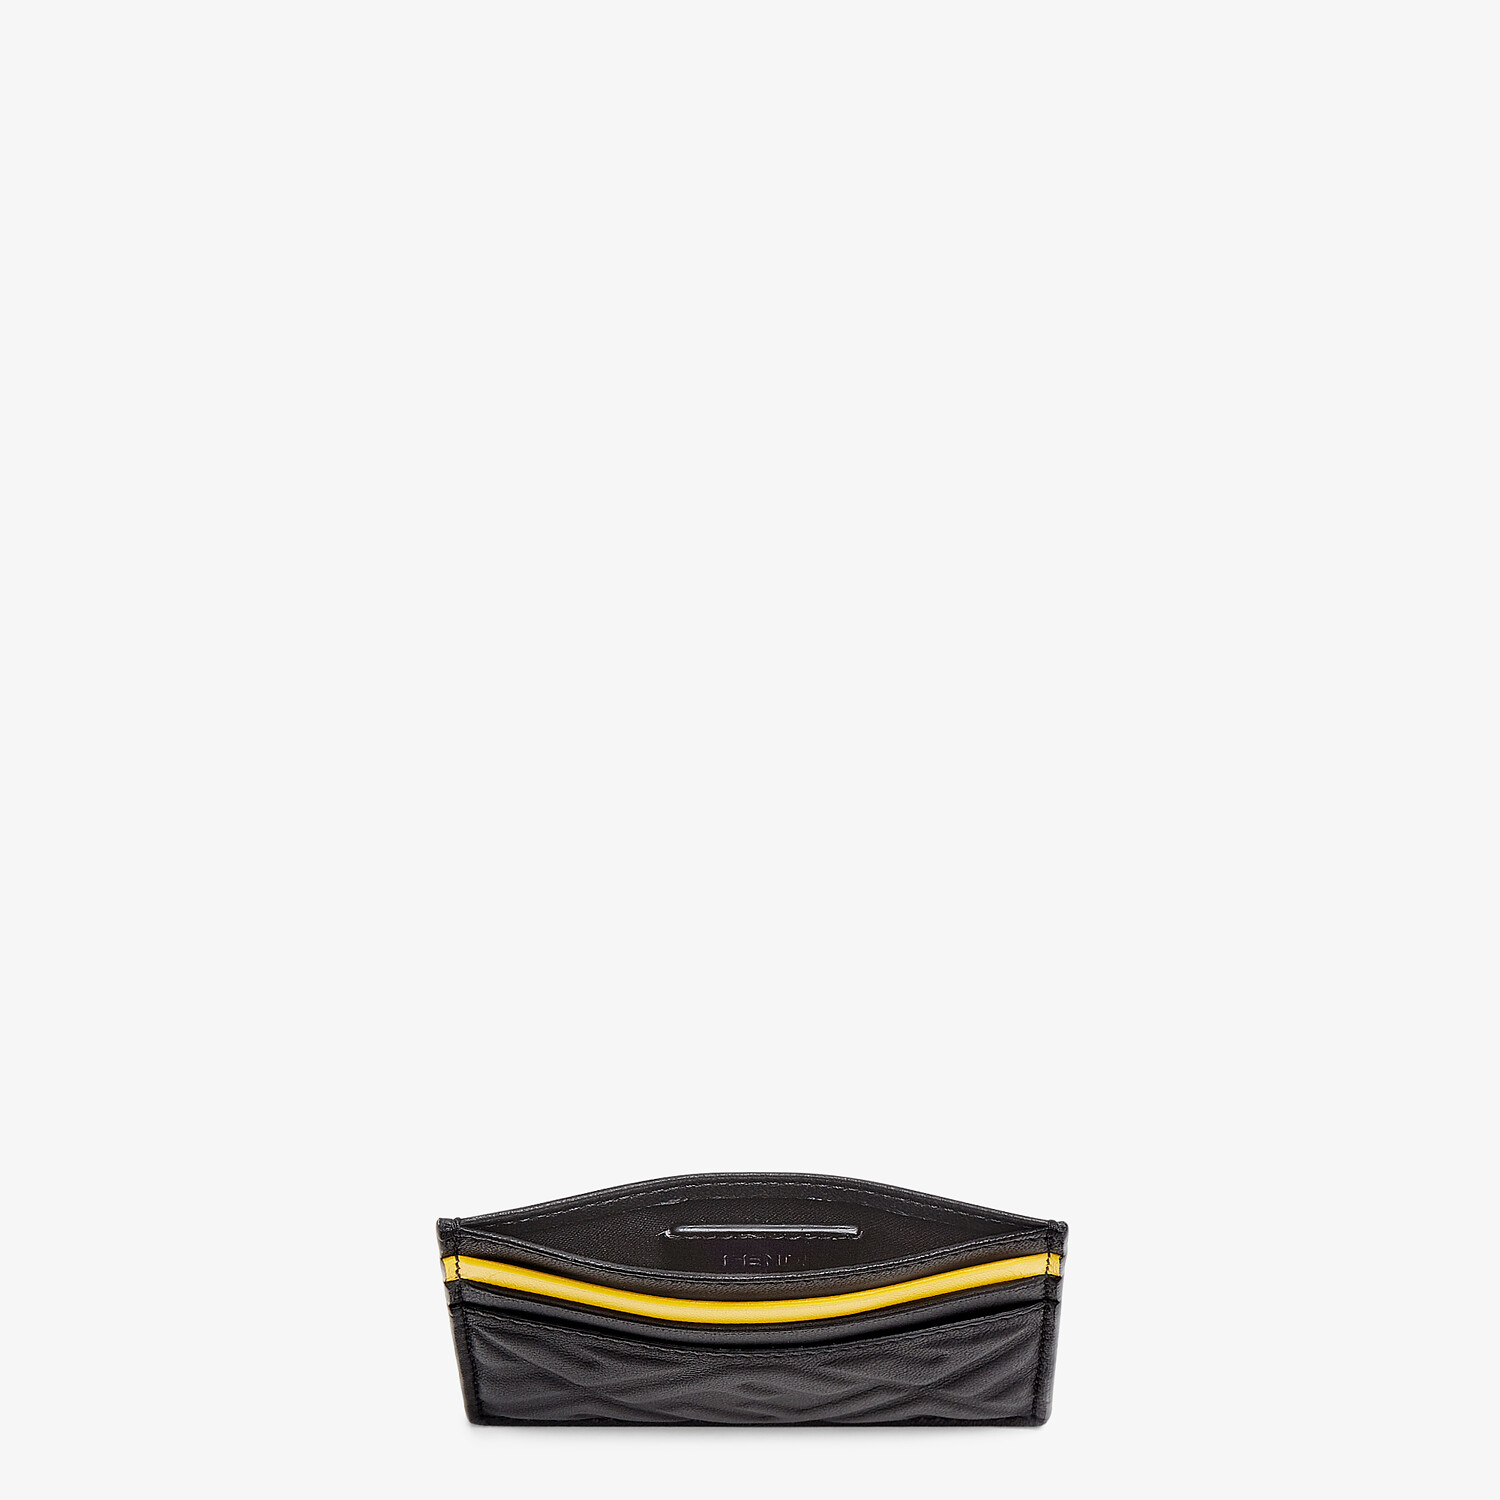 FENDI CARD HOLDER - Black nappa leather card holder - view 3 detail